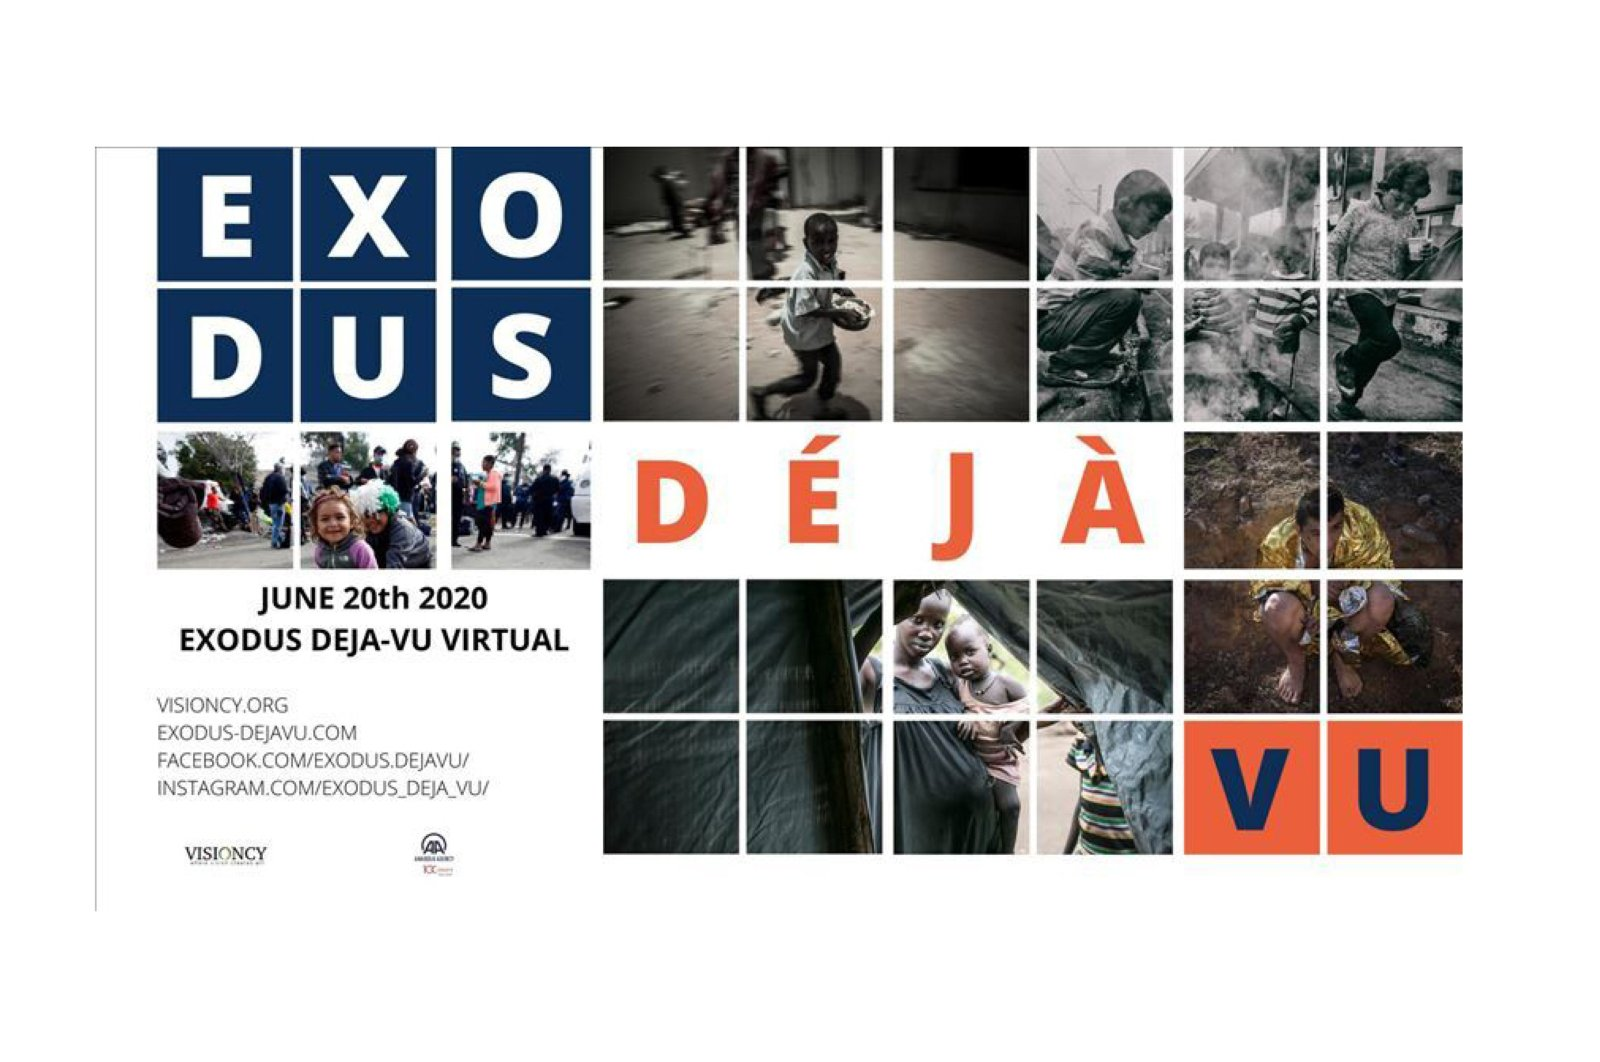 """The """"Exodus Deja-vu"""" exhibition features photos on refugee life by 11 successful photojournalists. (AA PHOTO)"""